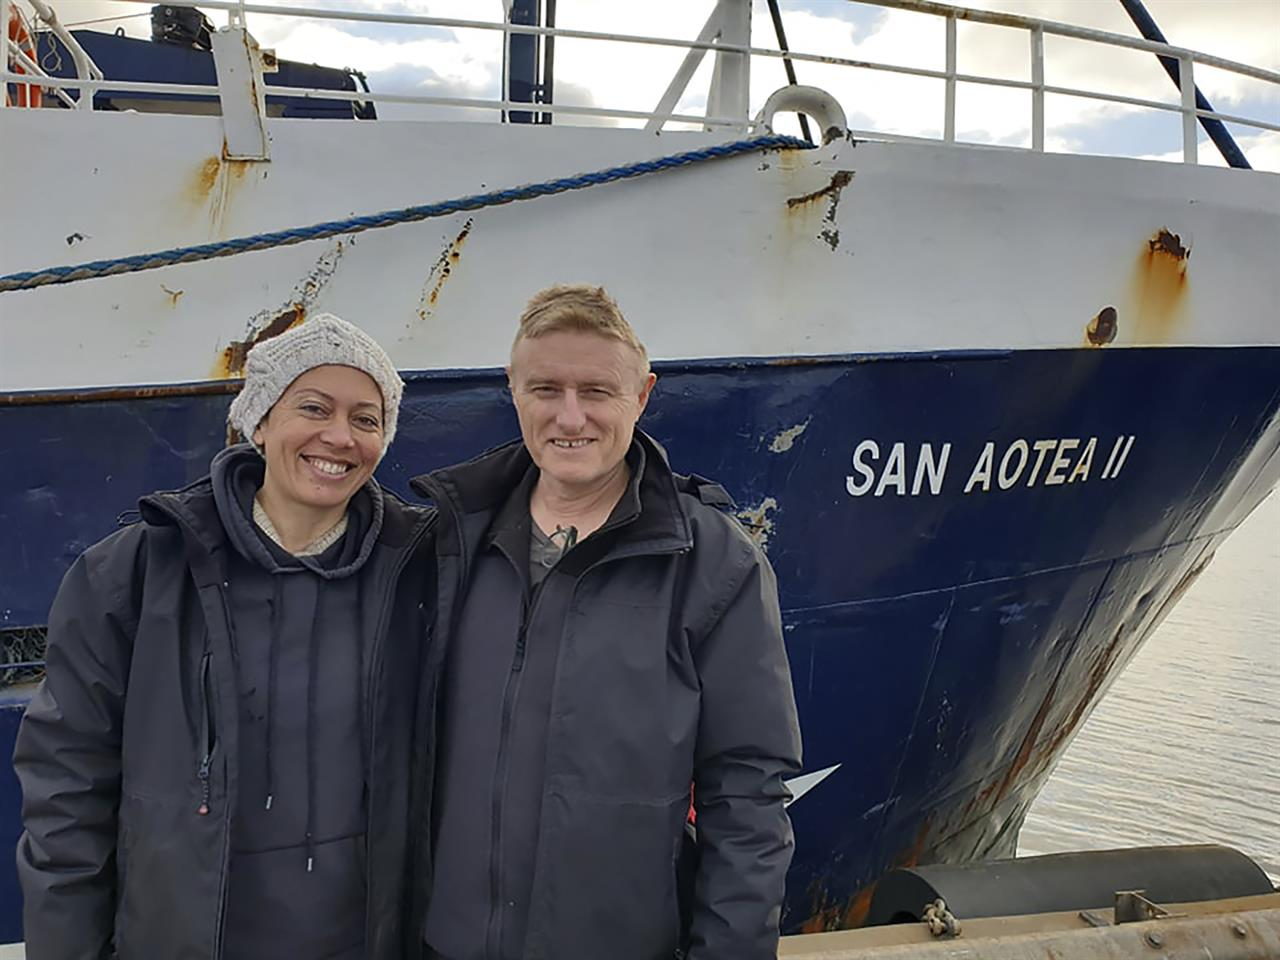 Stranded by virus, honeymooners hitch home on Antarctic boat